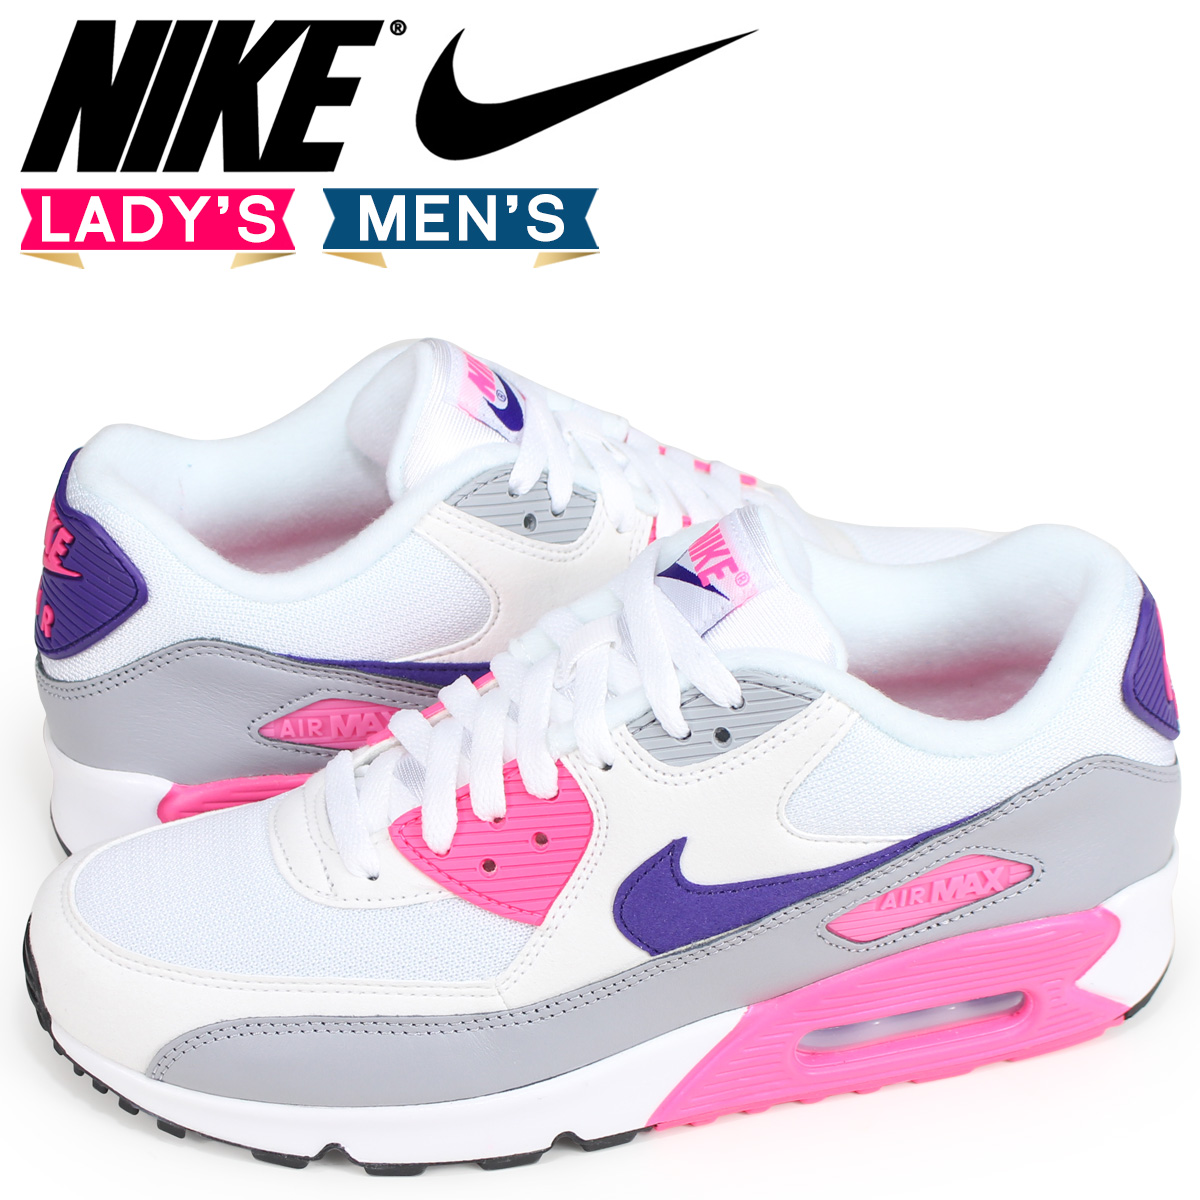 sale retailer 4ae4e 74b98 Nike NIKE Air Max 90 lady s men s sneakers WMNS AIR MAX 90 325,213-136 white